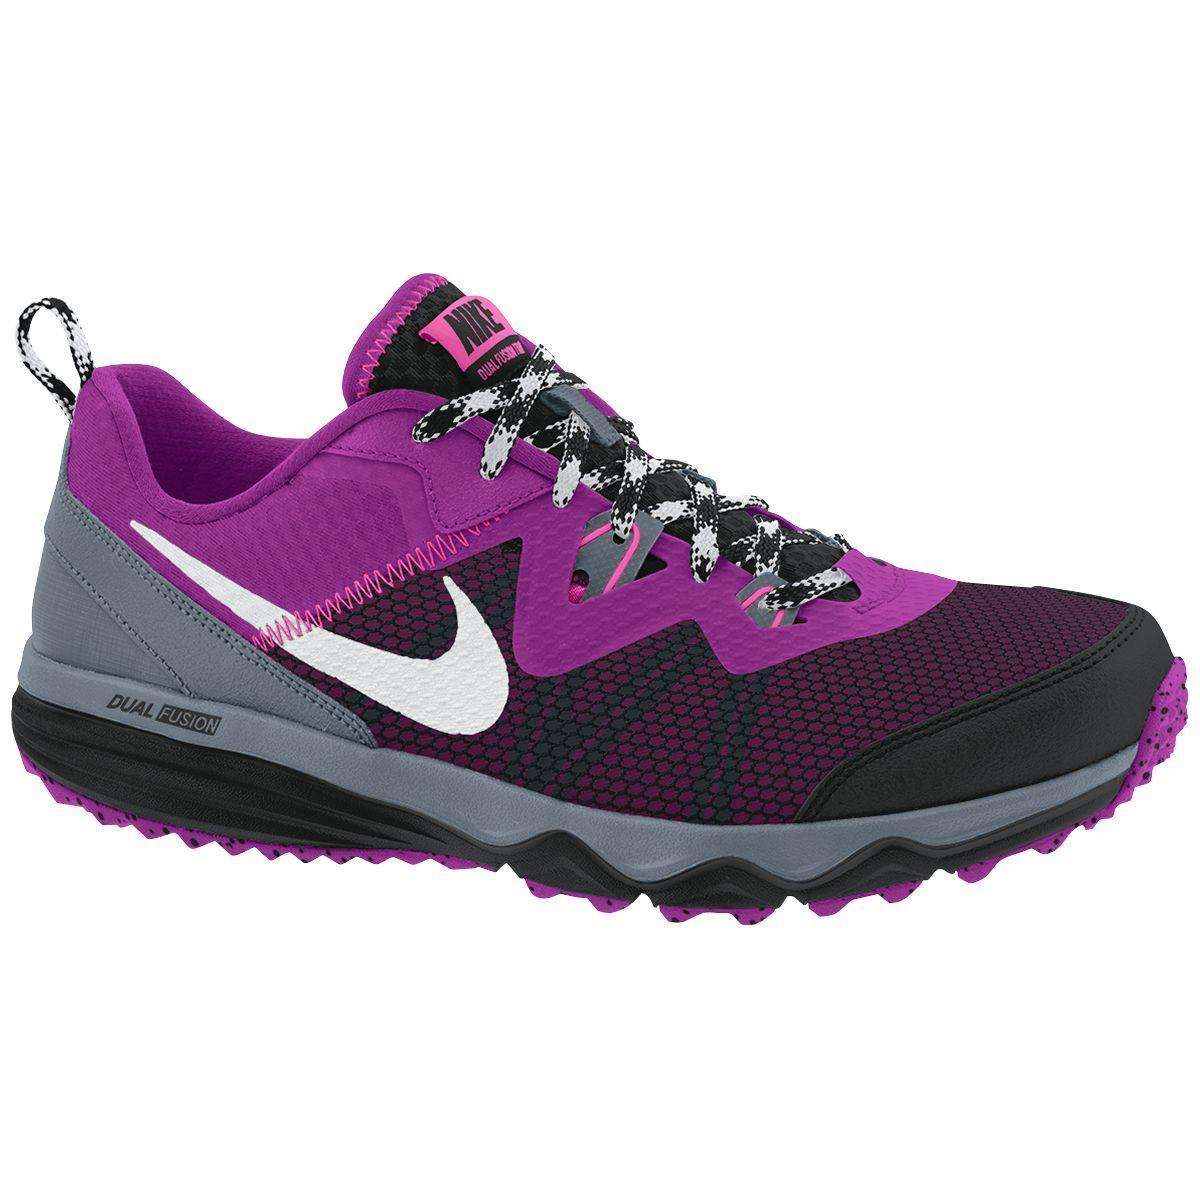 Model Nike Zoom Wildhorse - Womens Trail Running Shoes - Purple/Navy/Orange Online | Sportitude